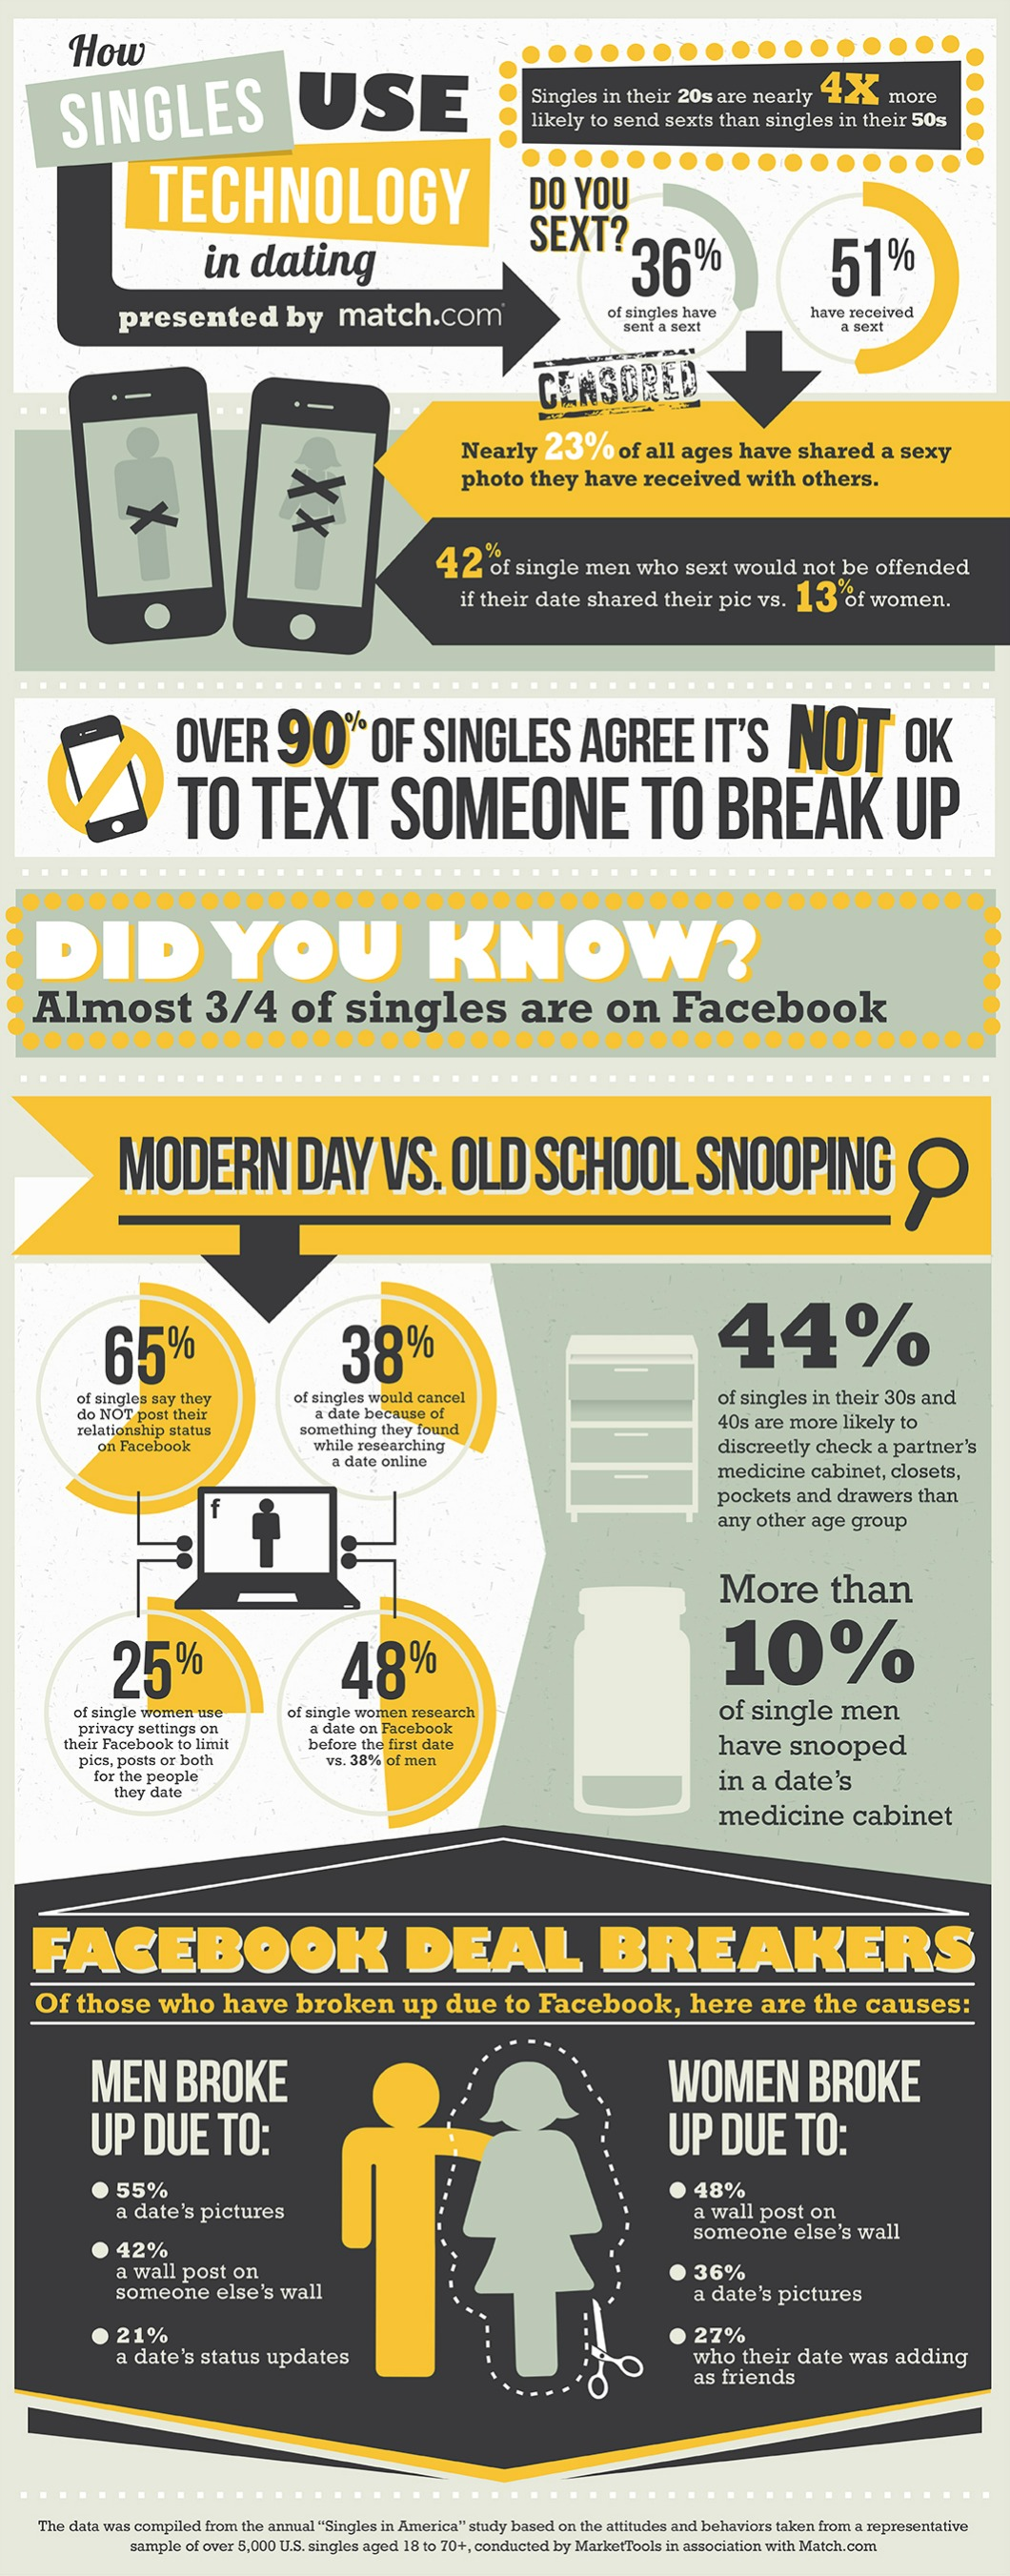 JC Social Media Mashable Infographic